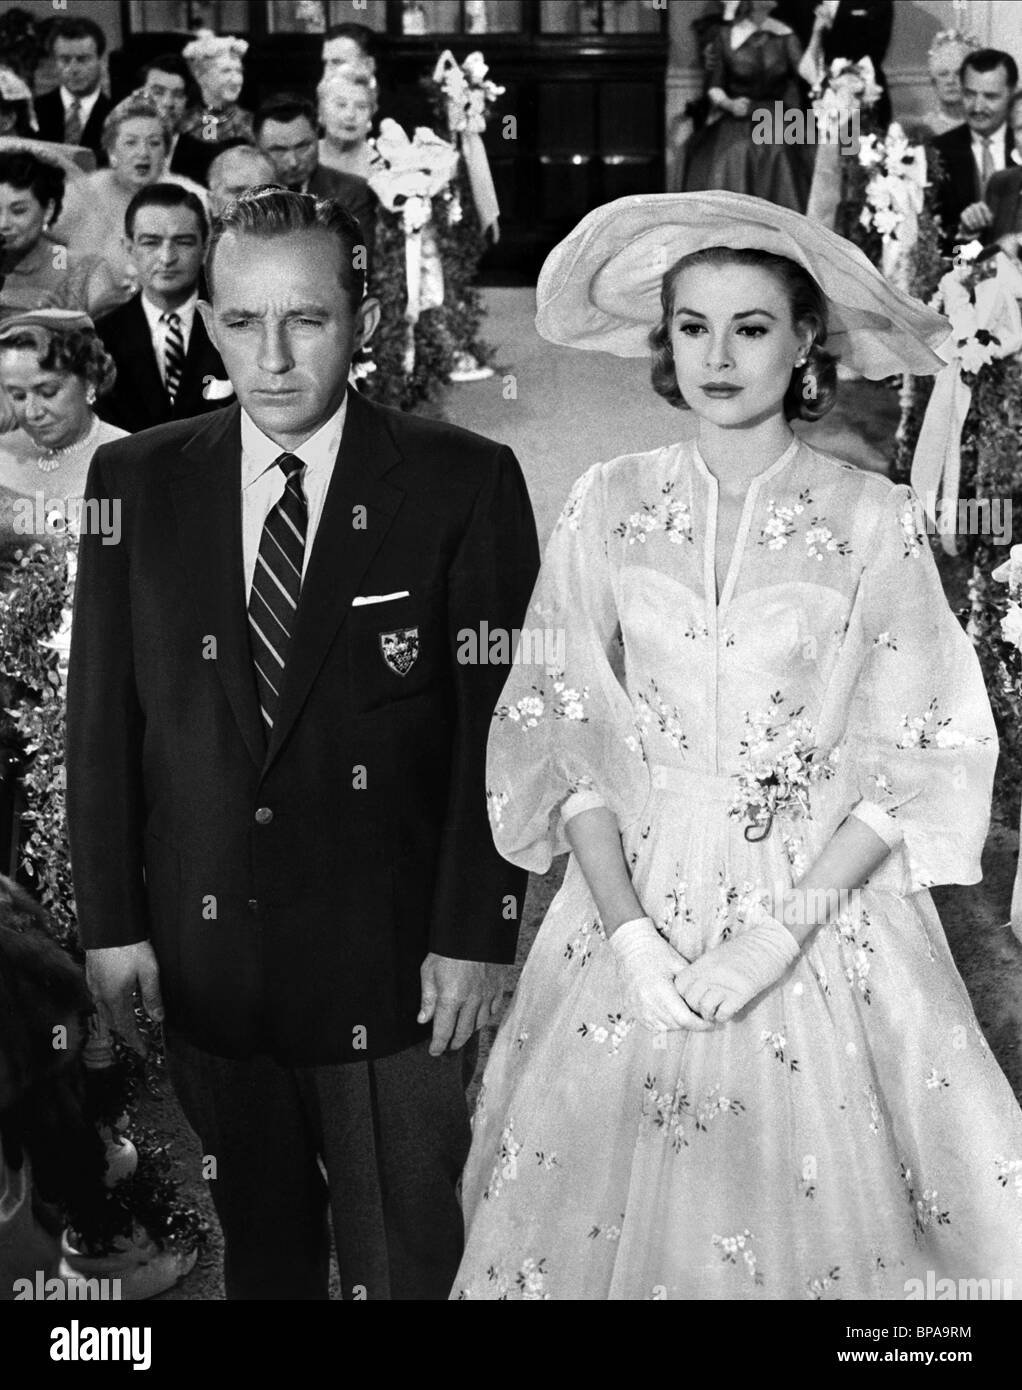 BING CROSBY, GRACE KELLY, HIGH SOCIETY, 1956 - Stock Image